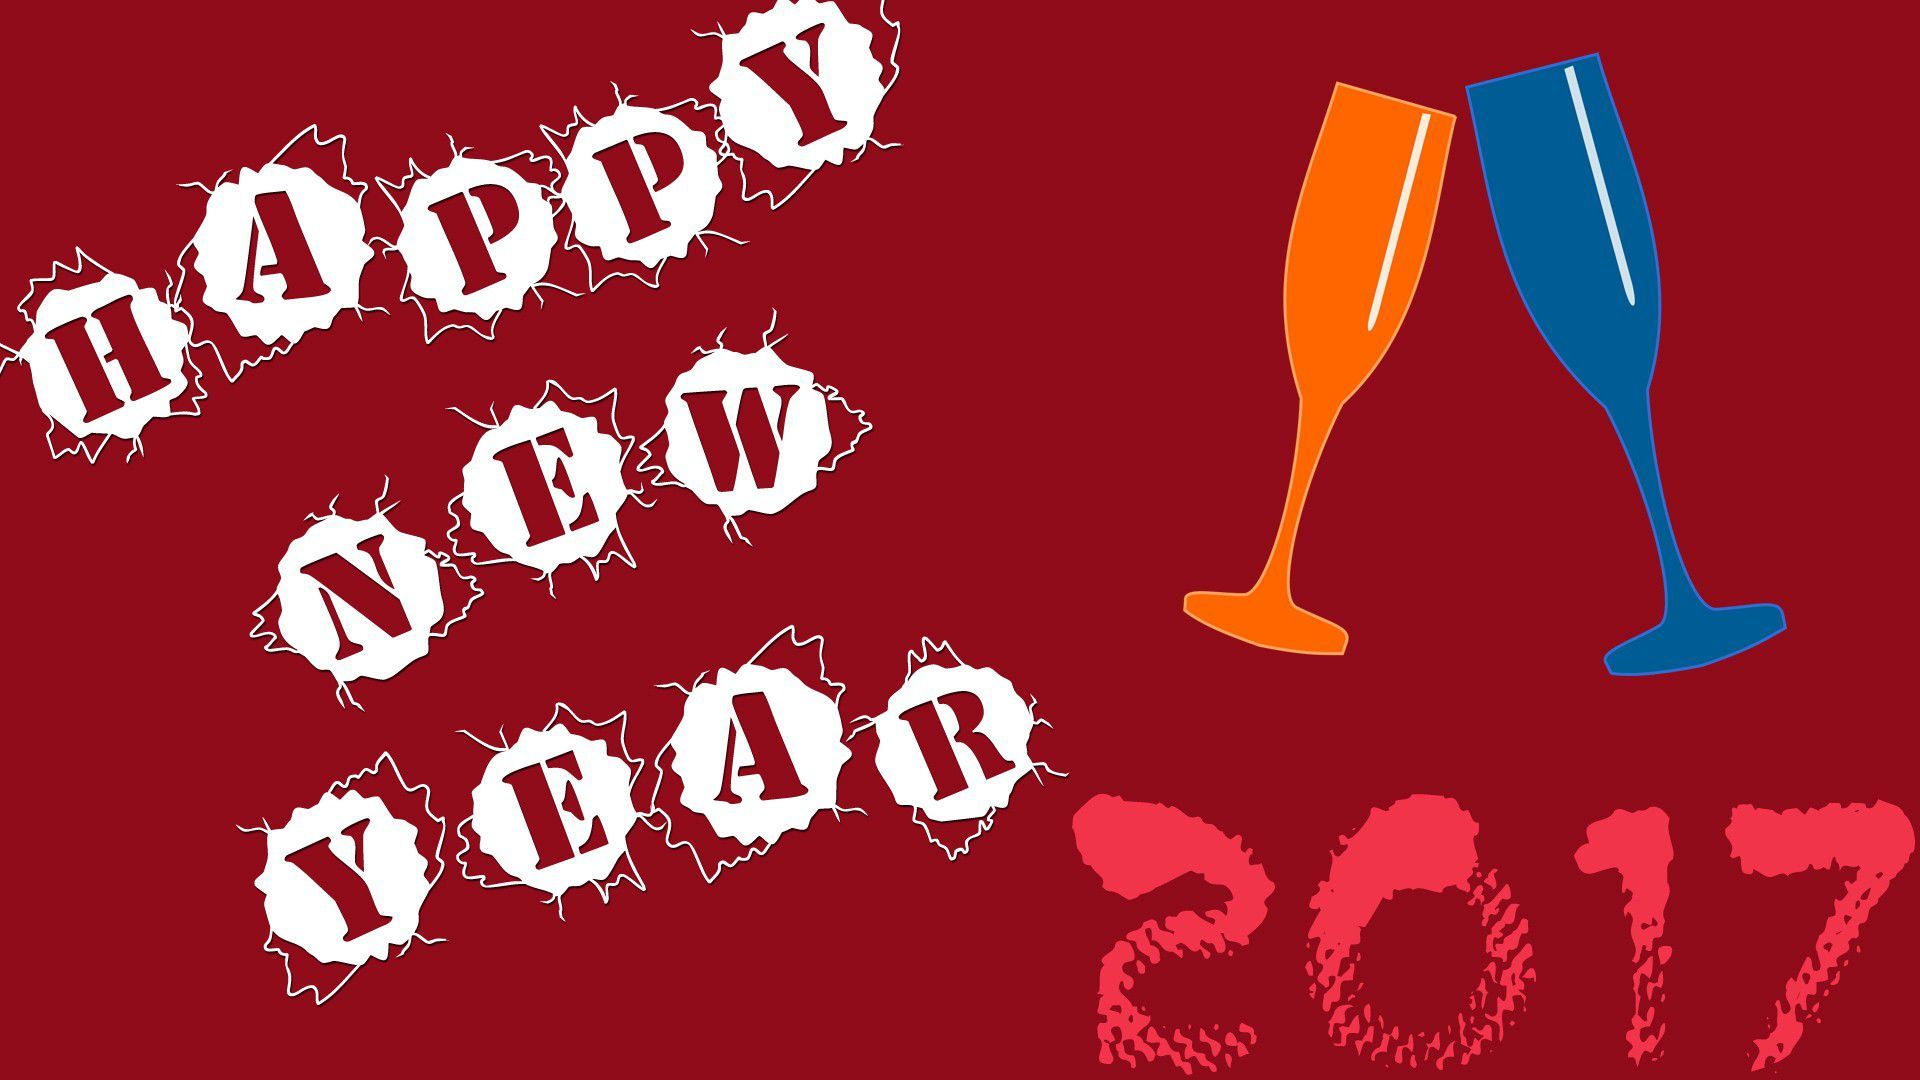 Pin by morehdwallpapers on new year 2017 wallpaper pinterest 2017 wallpaper hd photos happy new year happy new years eve voltagebd Choice Image